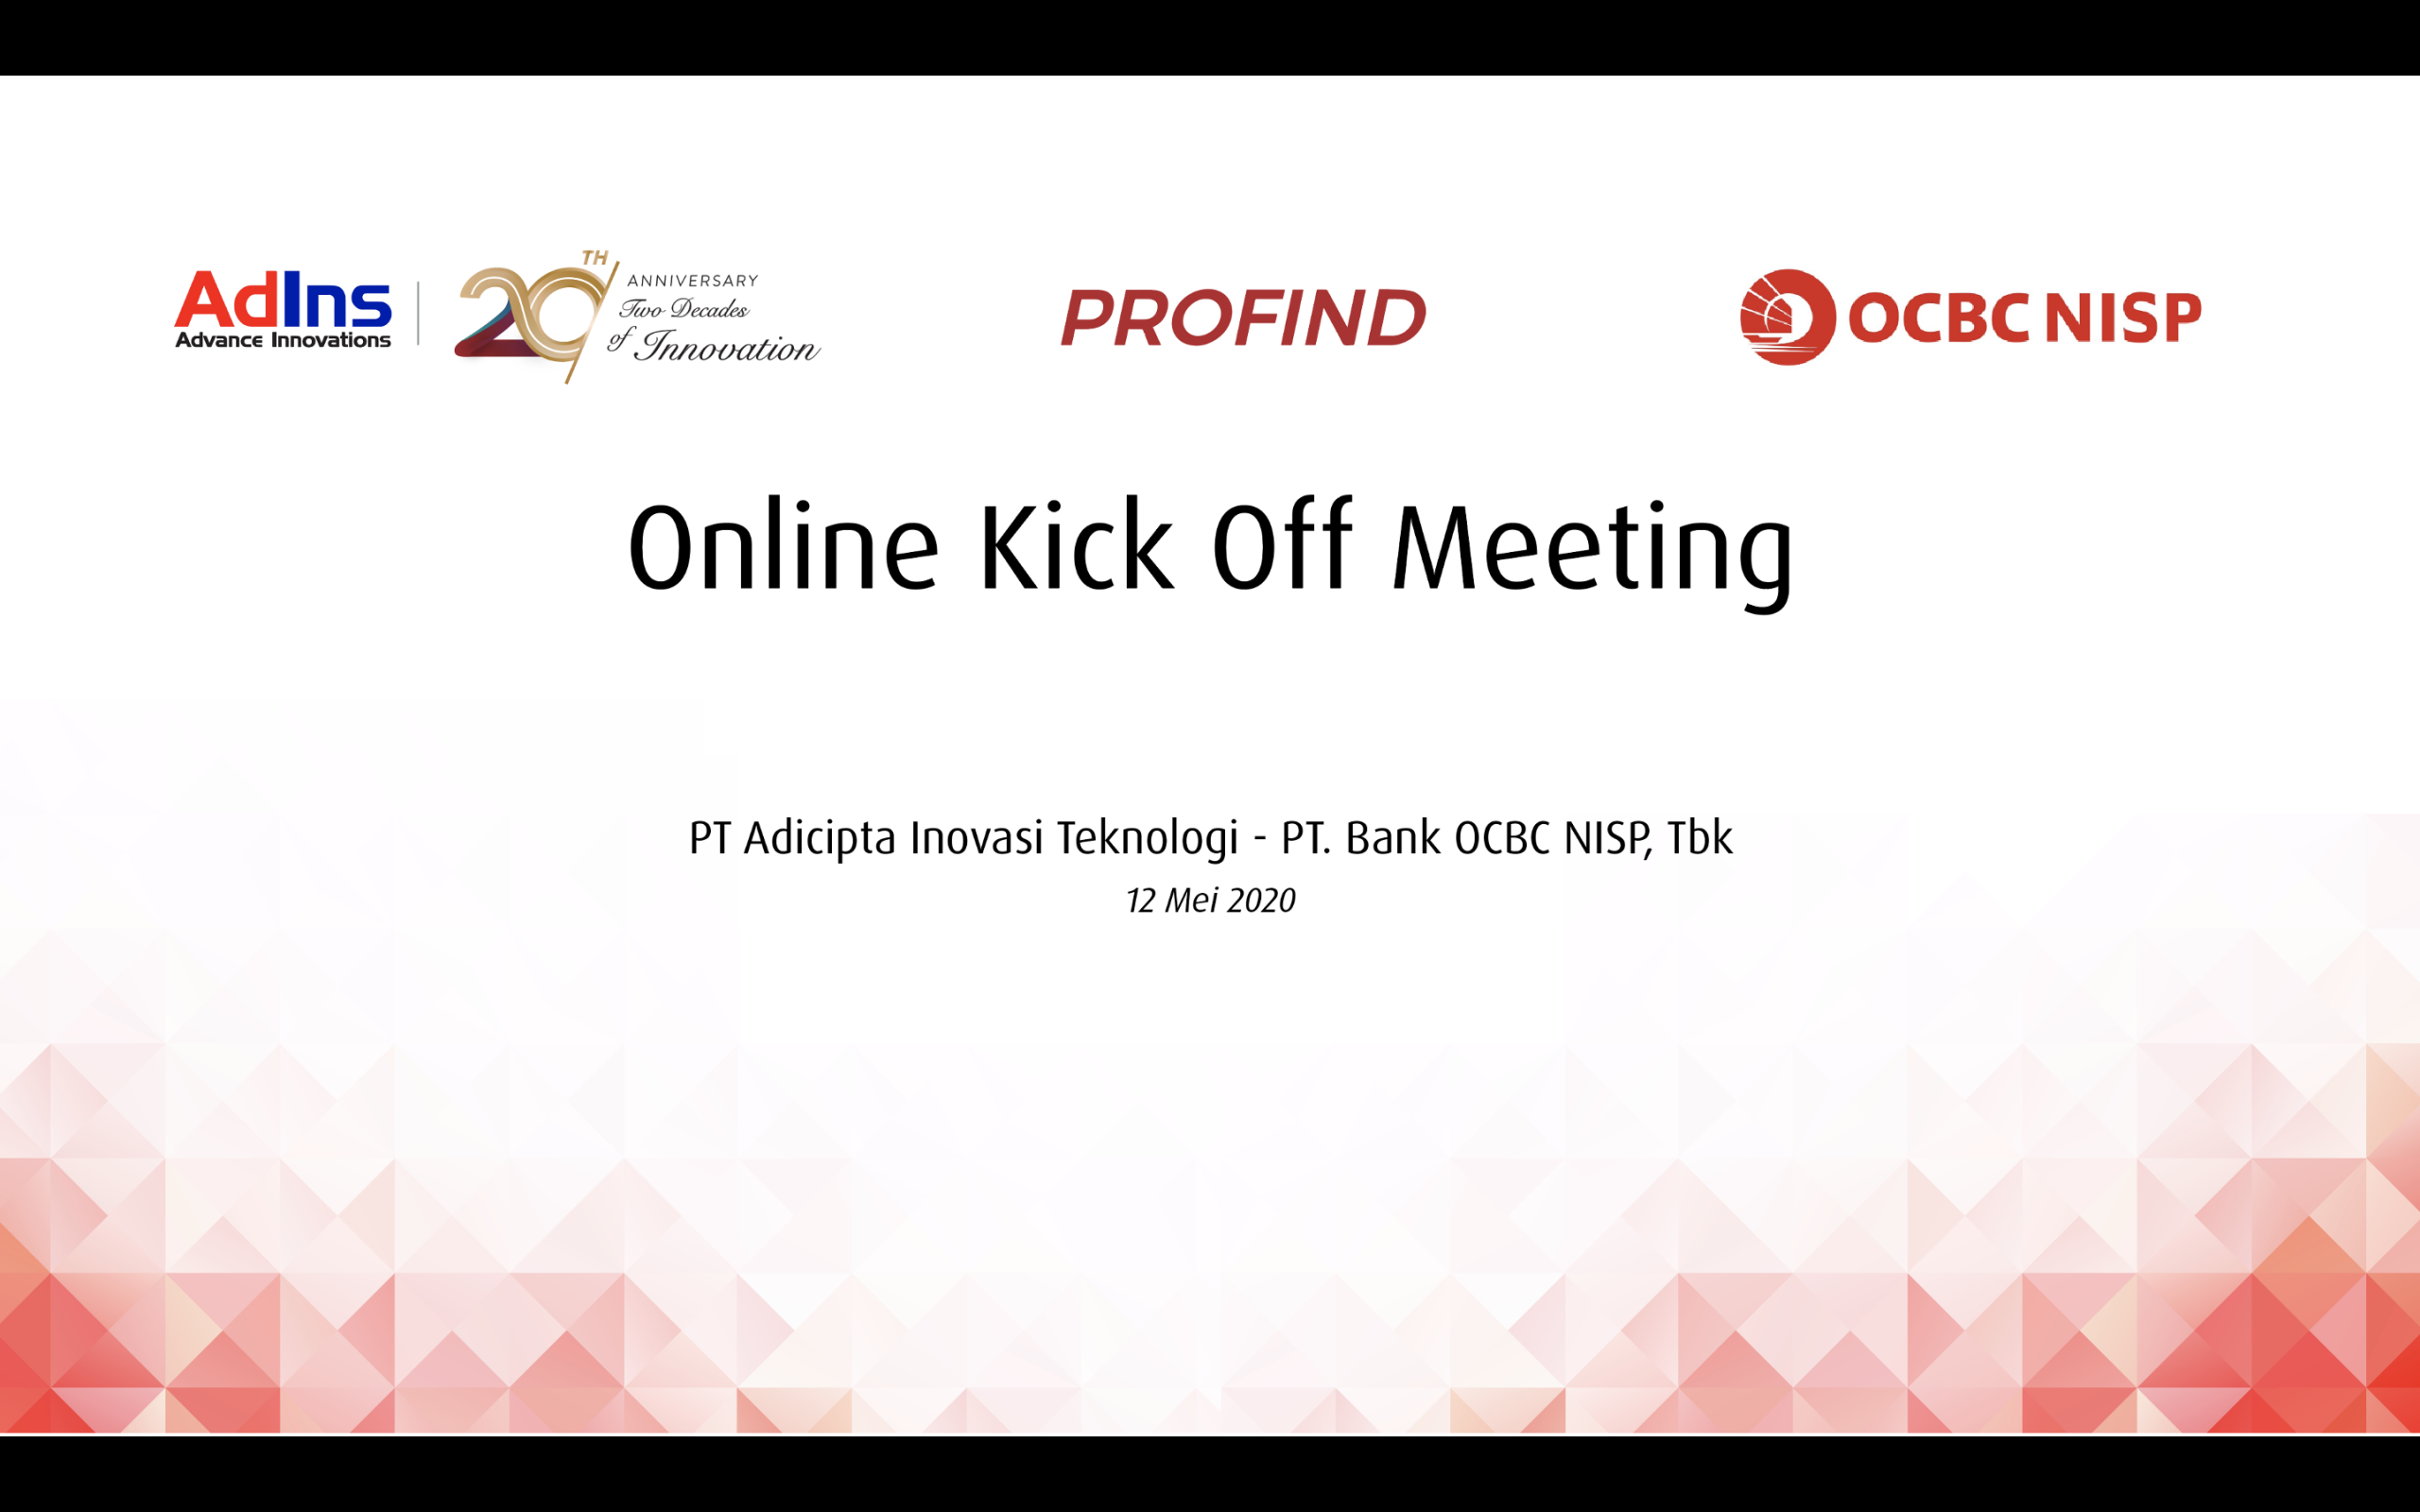 ADINS – OCBC Online Inaugural Meeting (Kick Off Meeting) In the Occasion of PROFIND Implementation